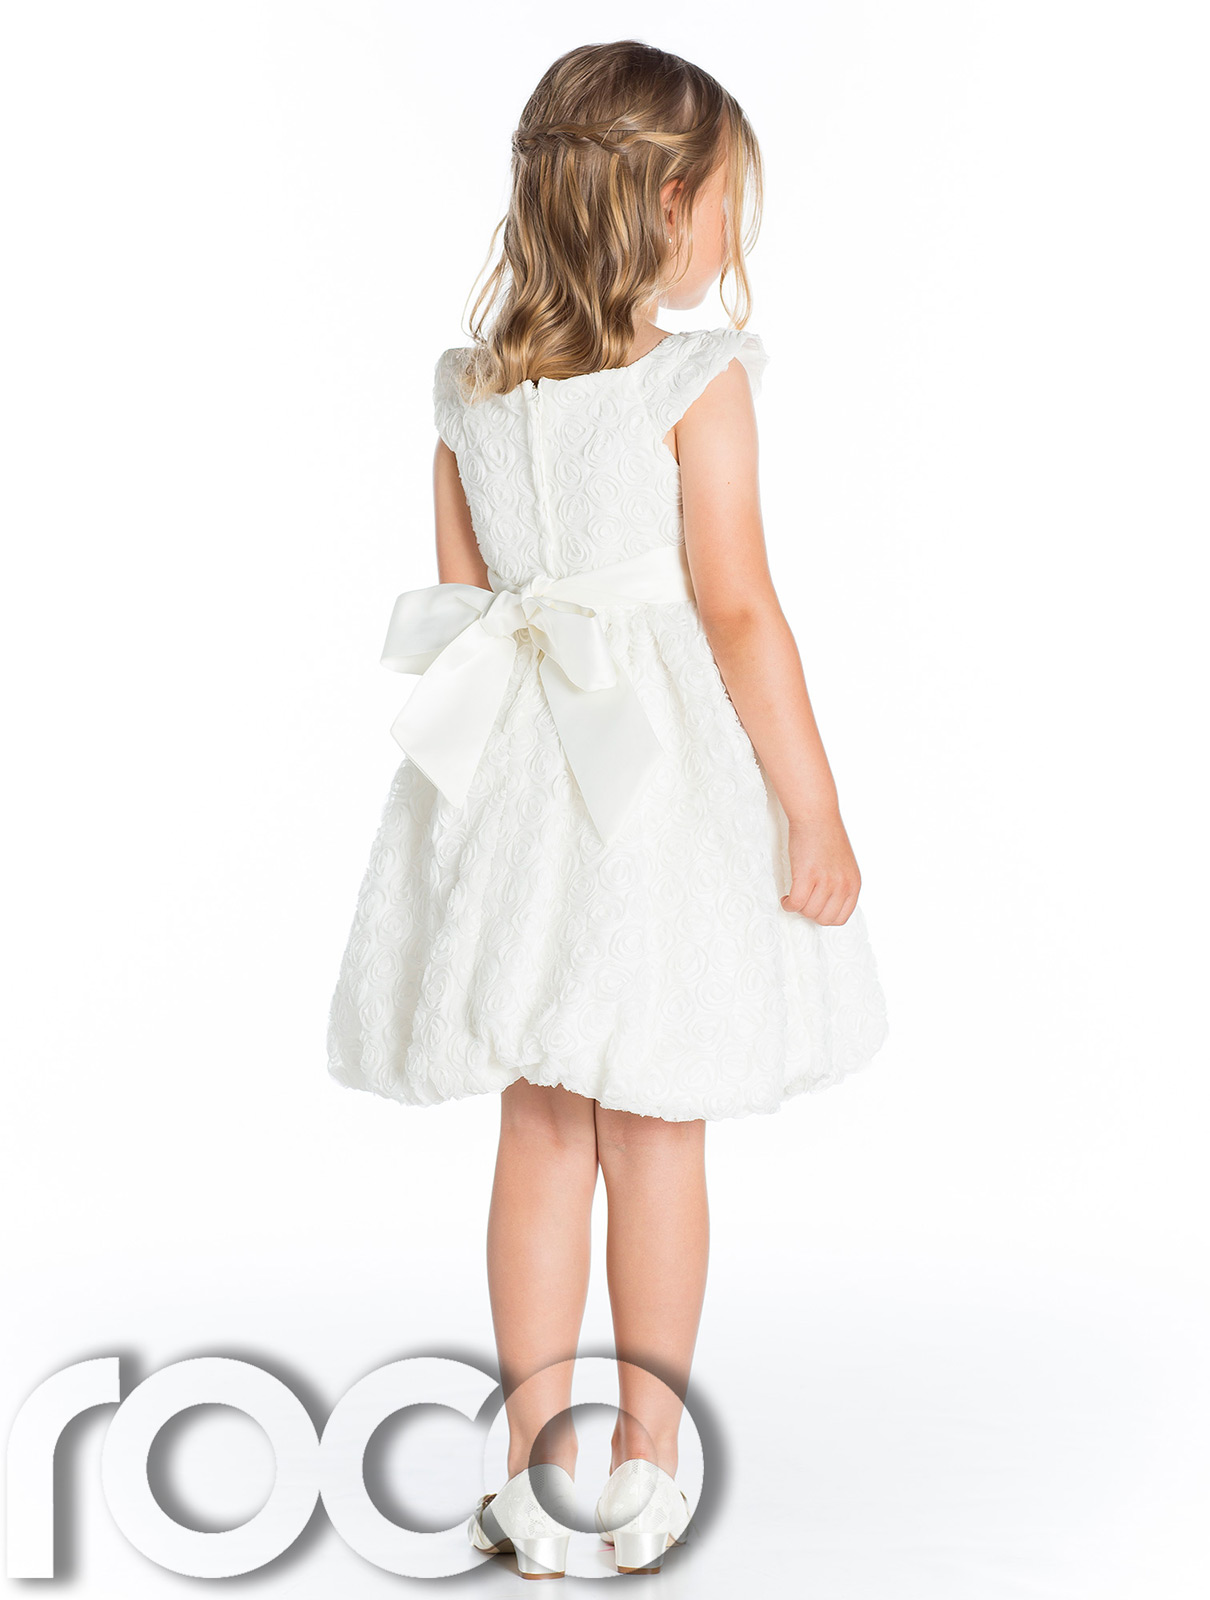 Sale: Girls & Baby Girls Clothes Filter Shop our collection of girls sale clothing and find a deal girls of every age, size and style will love! Top designer brands like Lipstik and Bonnie Jean are always available at unbelieveable prices.